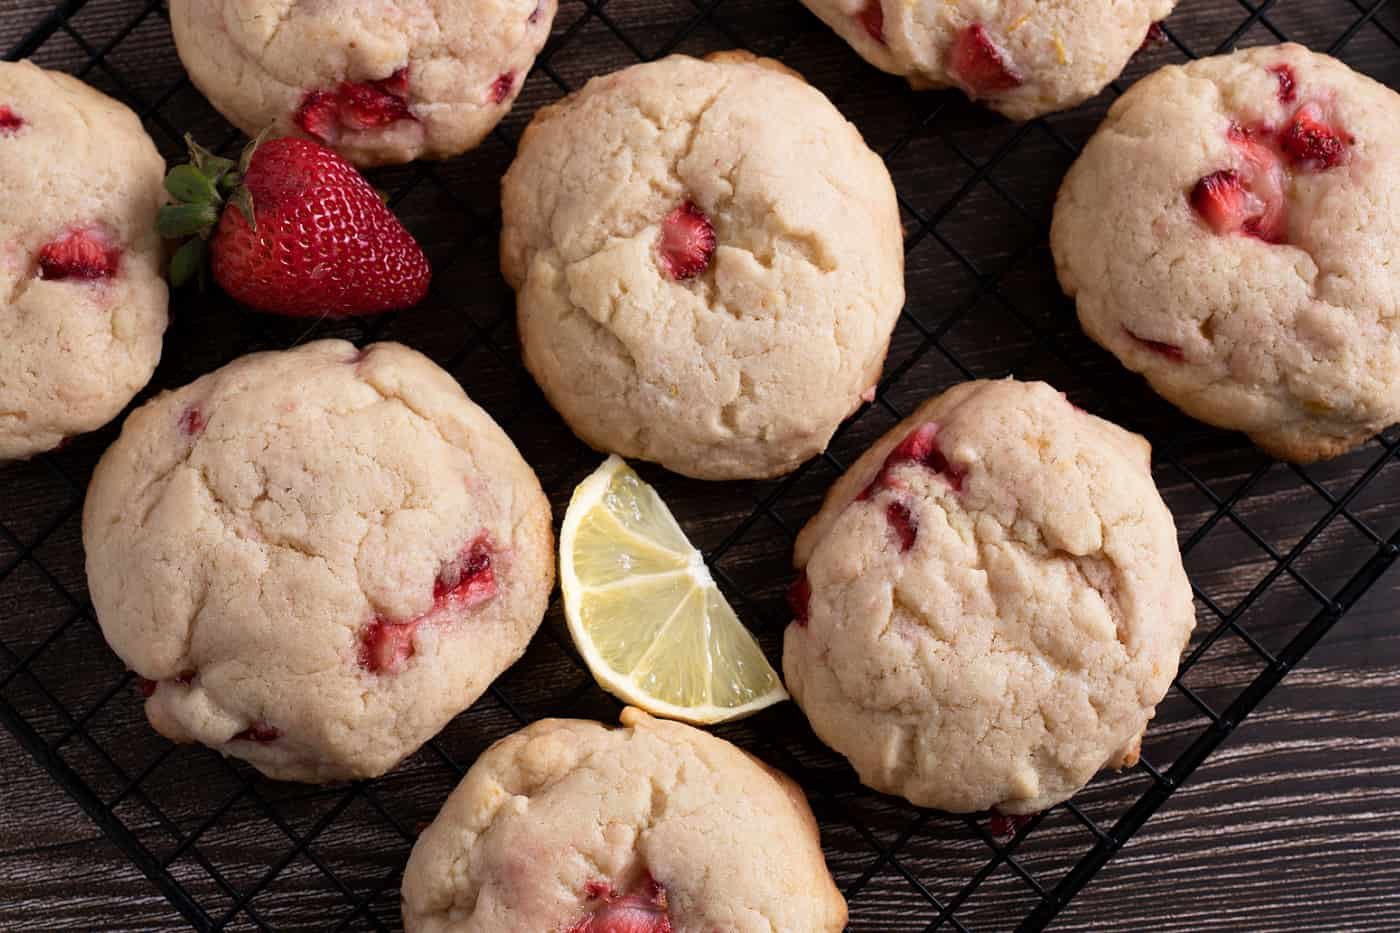 strawberry lemonade cream cheese cookies on a black cooling rack